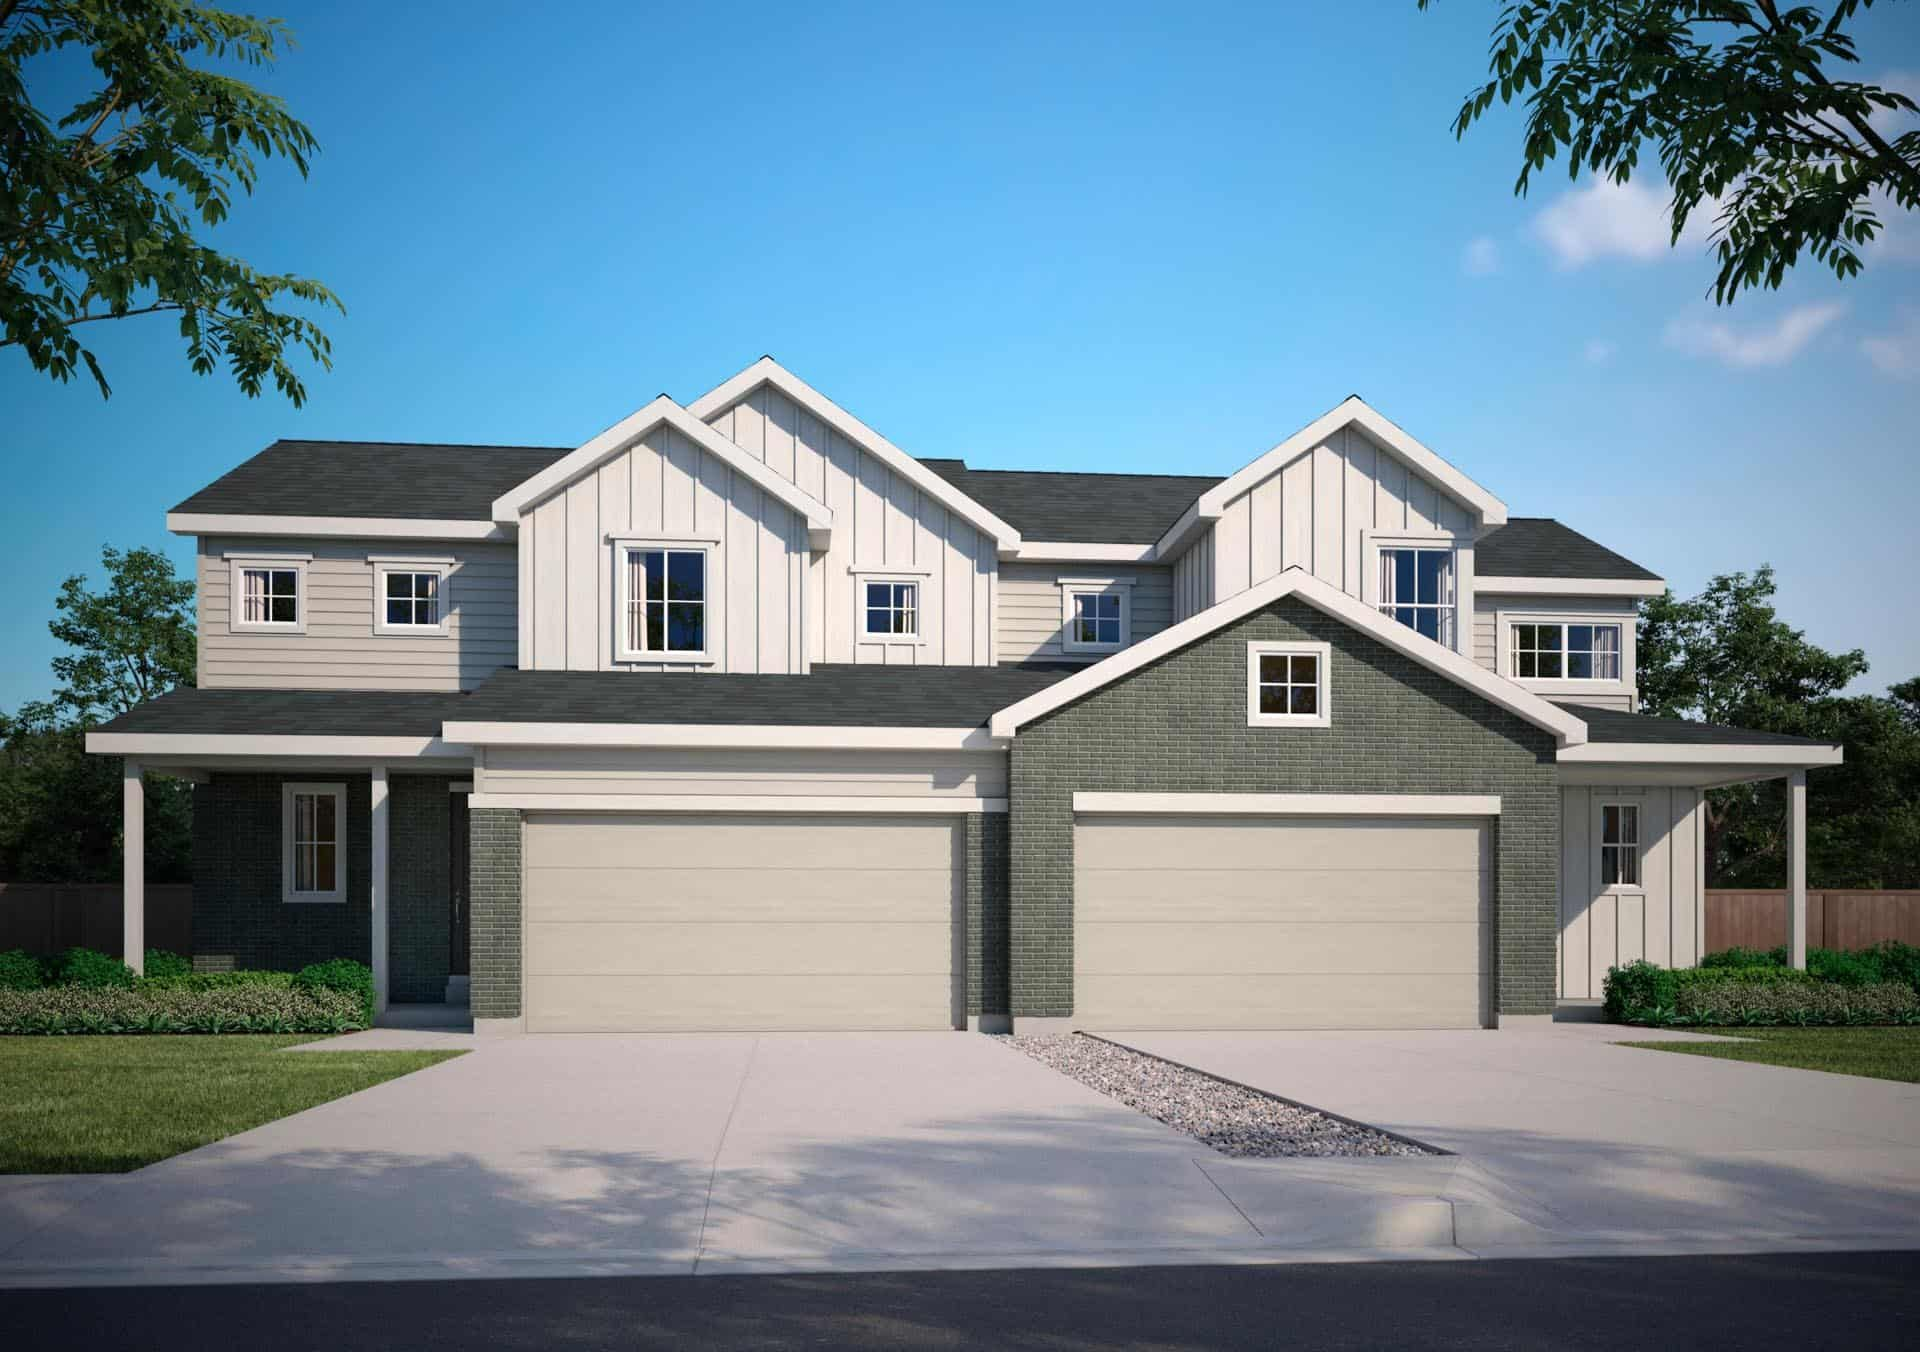 Farmhouse - A:Plan 3403 A   |   Plan 3402 A